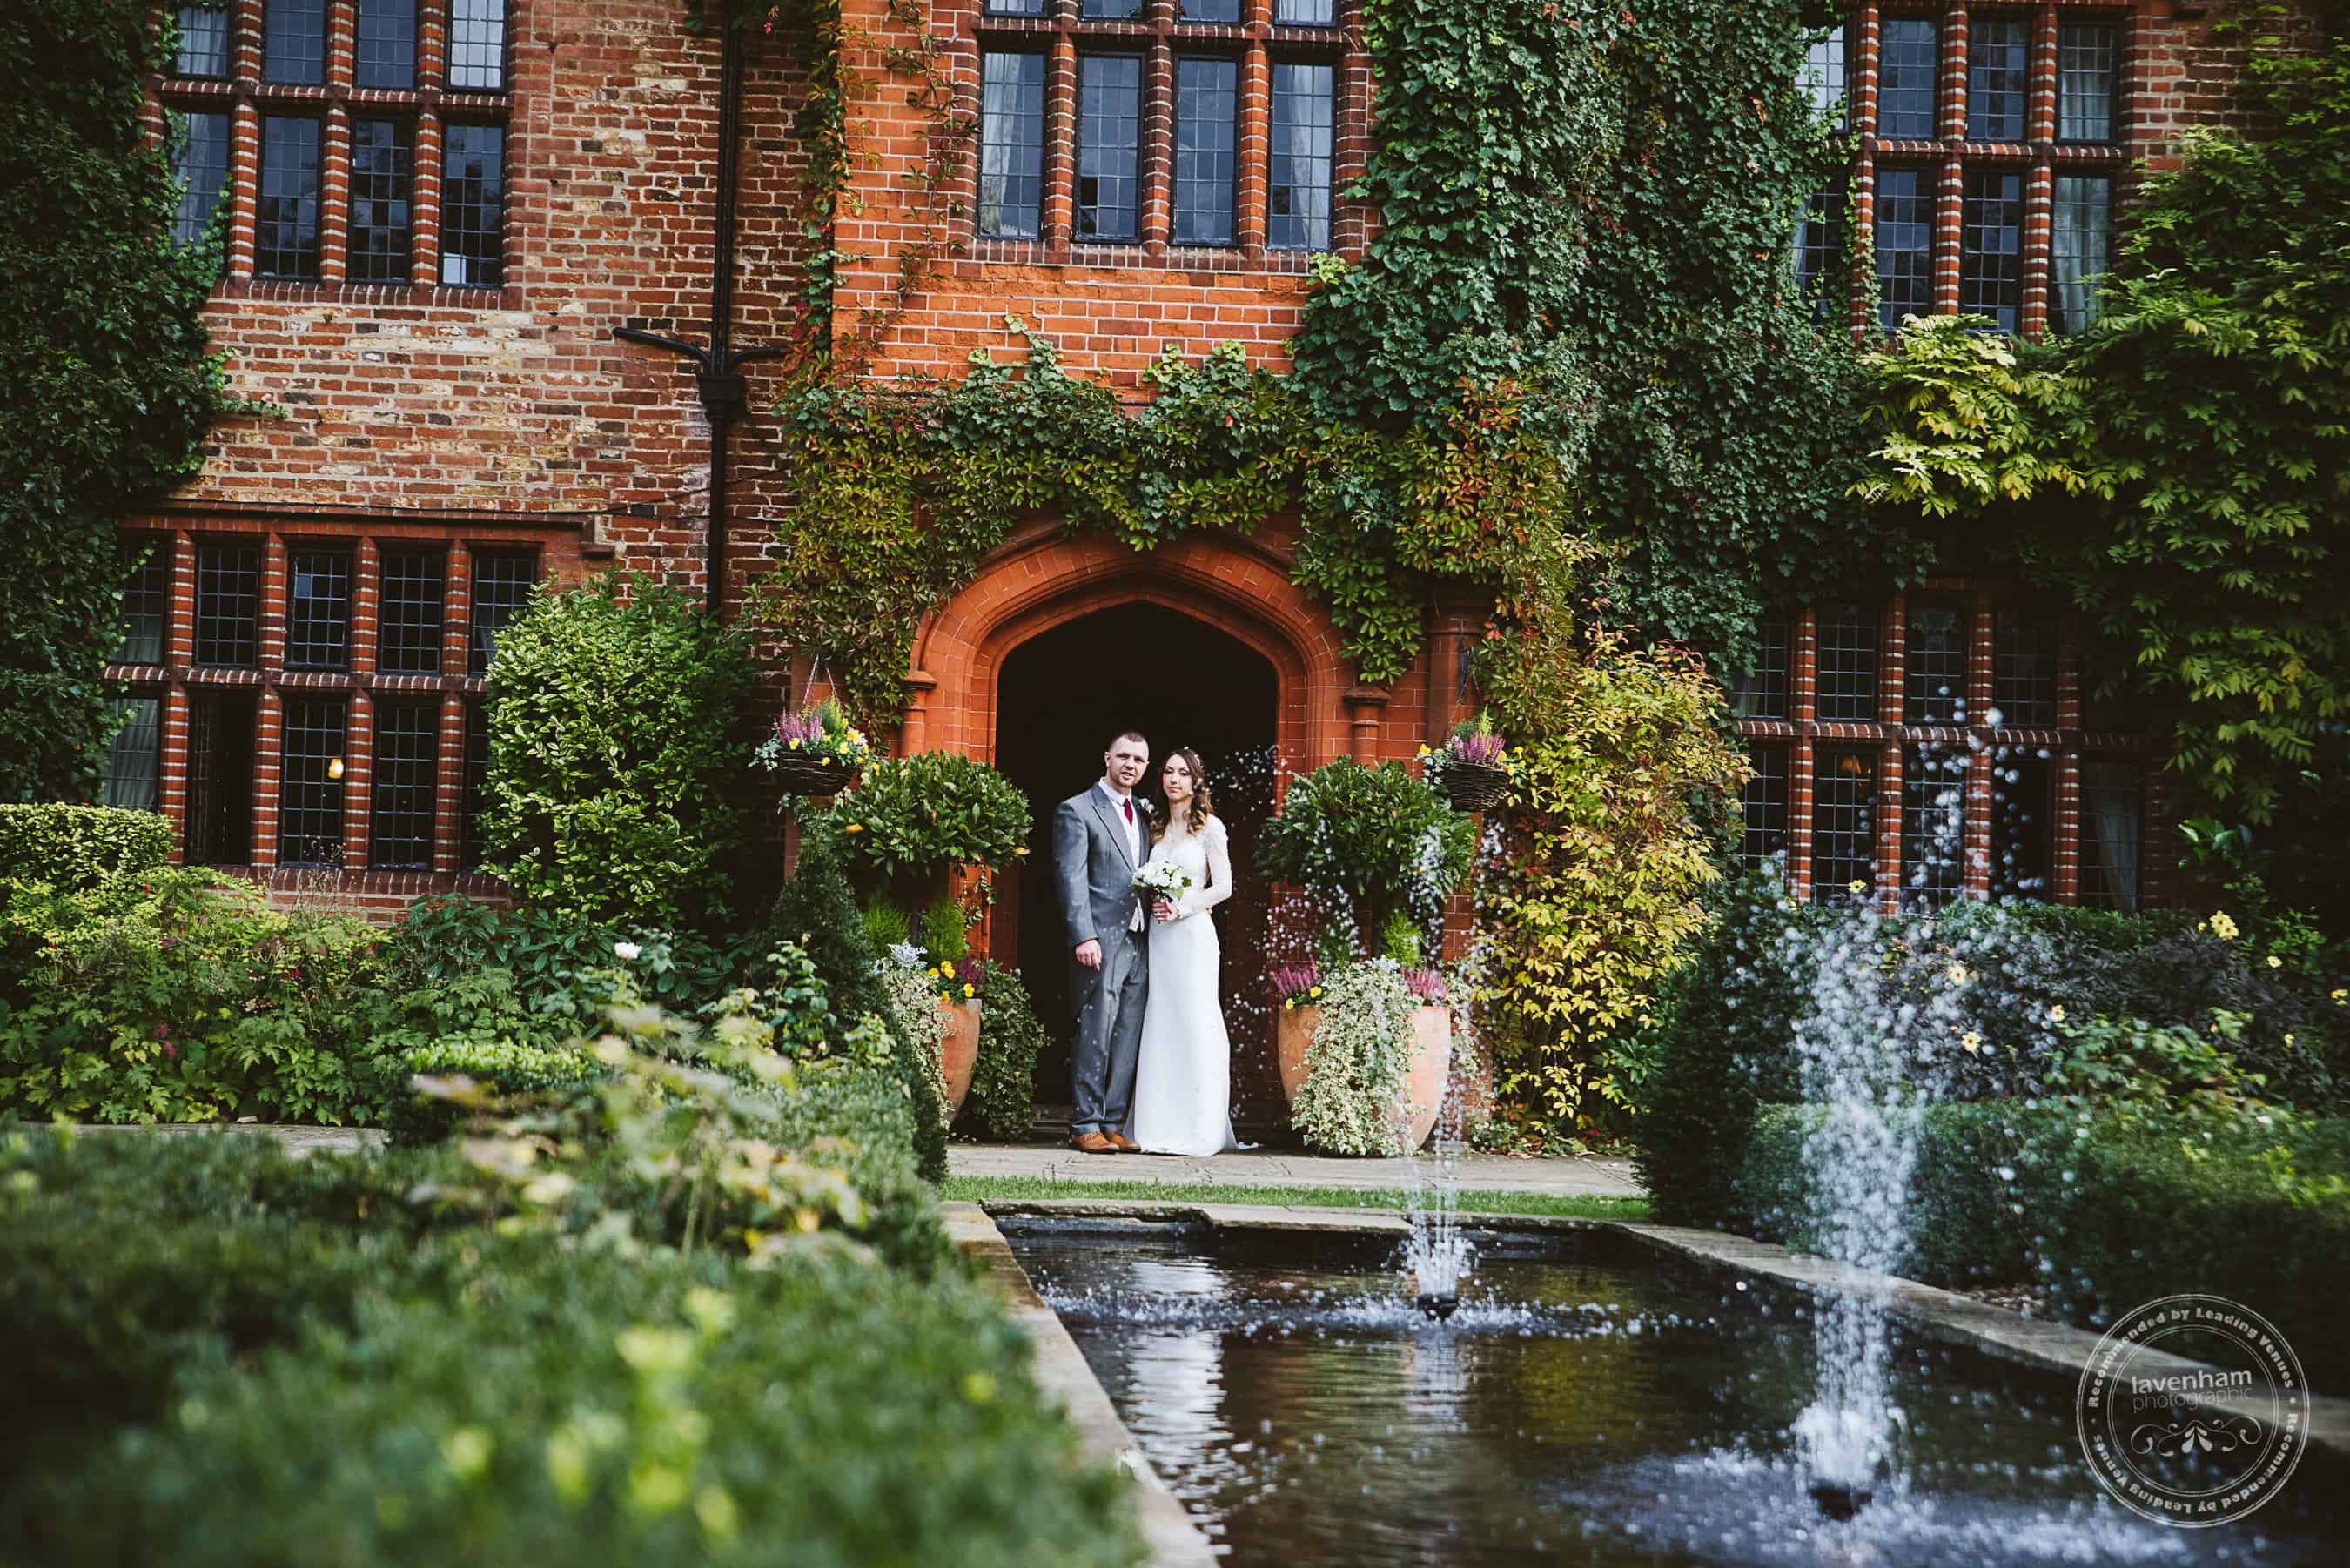 041118 Woodhall Manor Wedding Photography by Lavenham Photographic 074